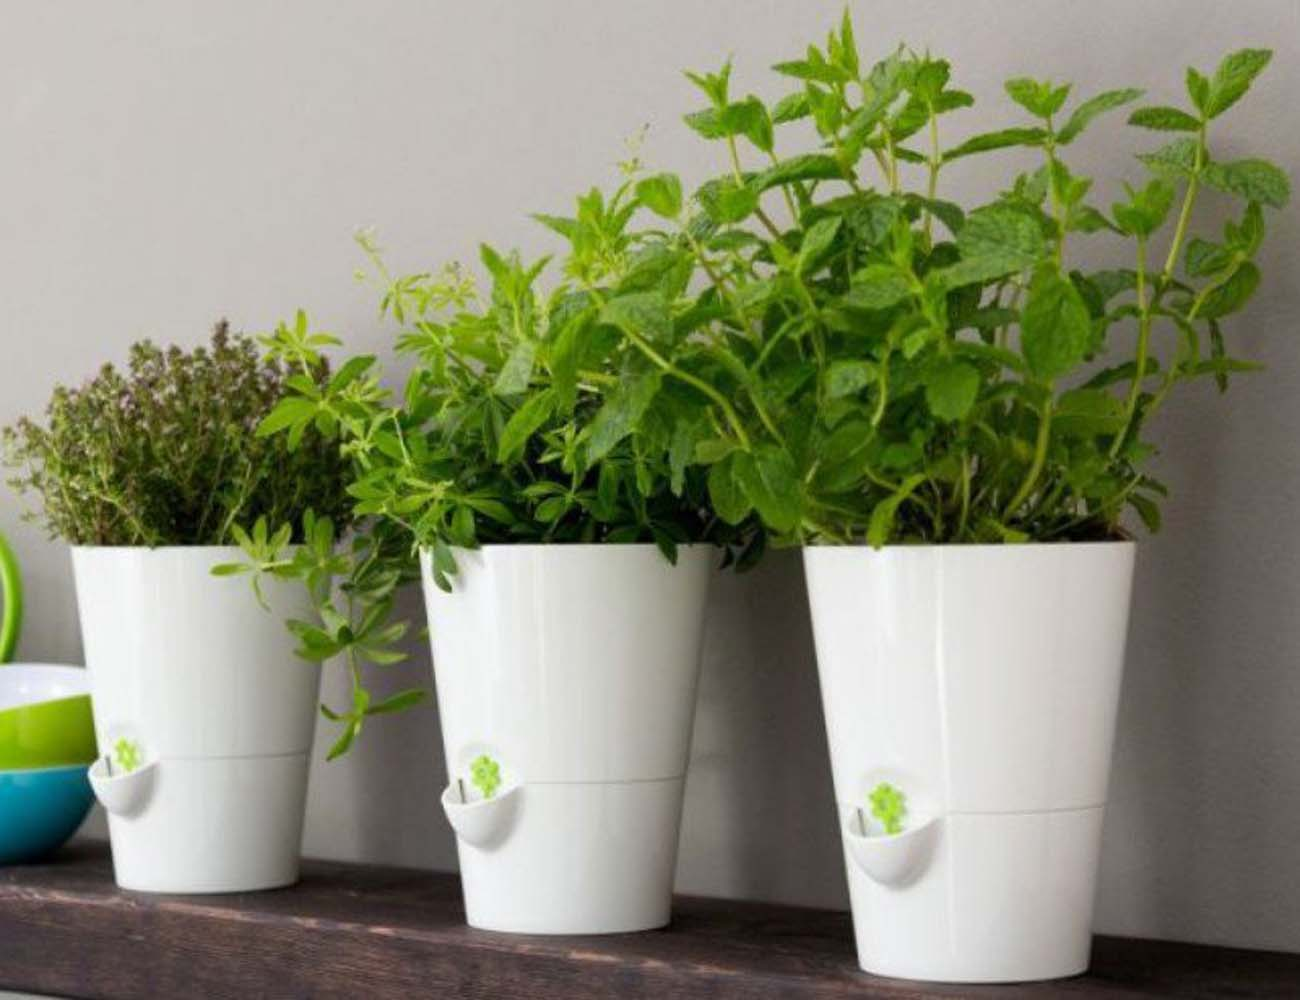 Smart Planter – Designed for Kitchen Herbs